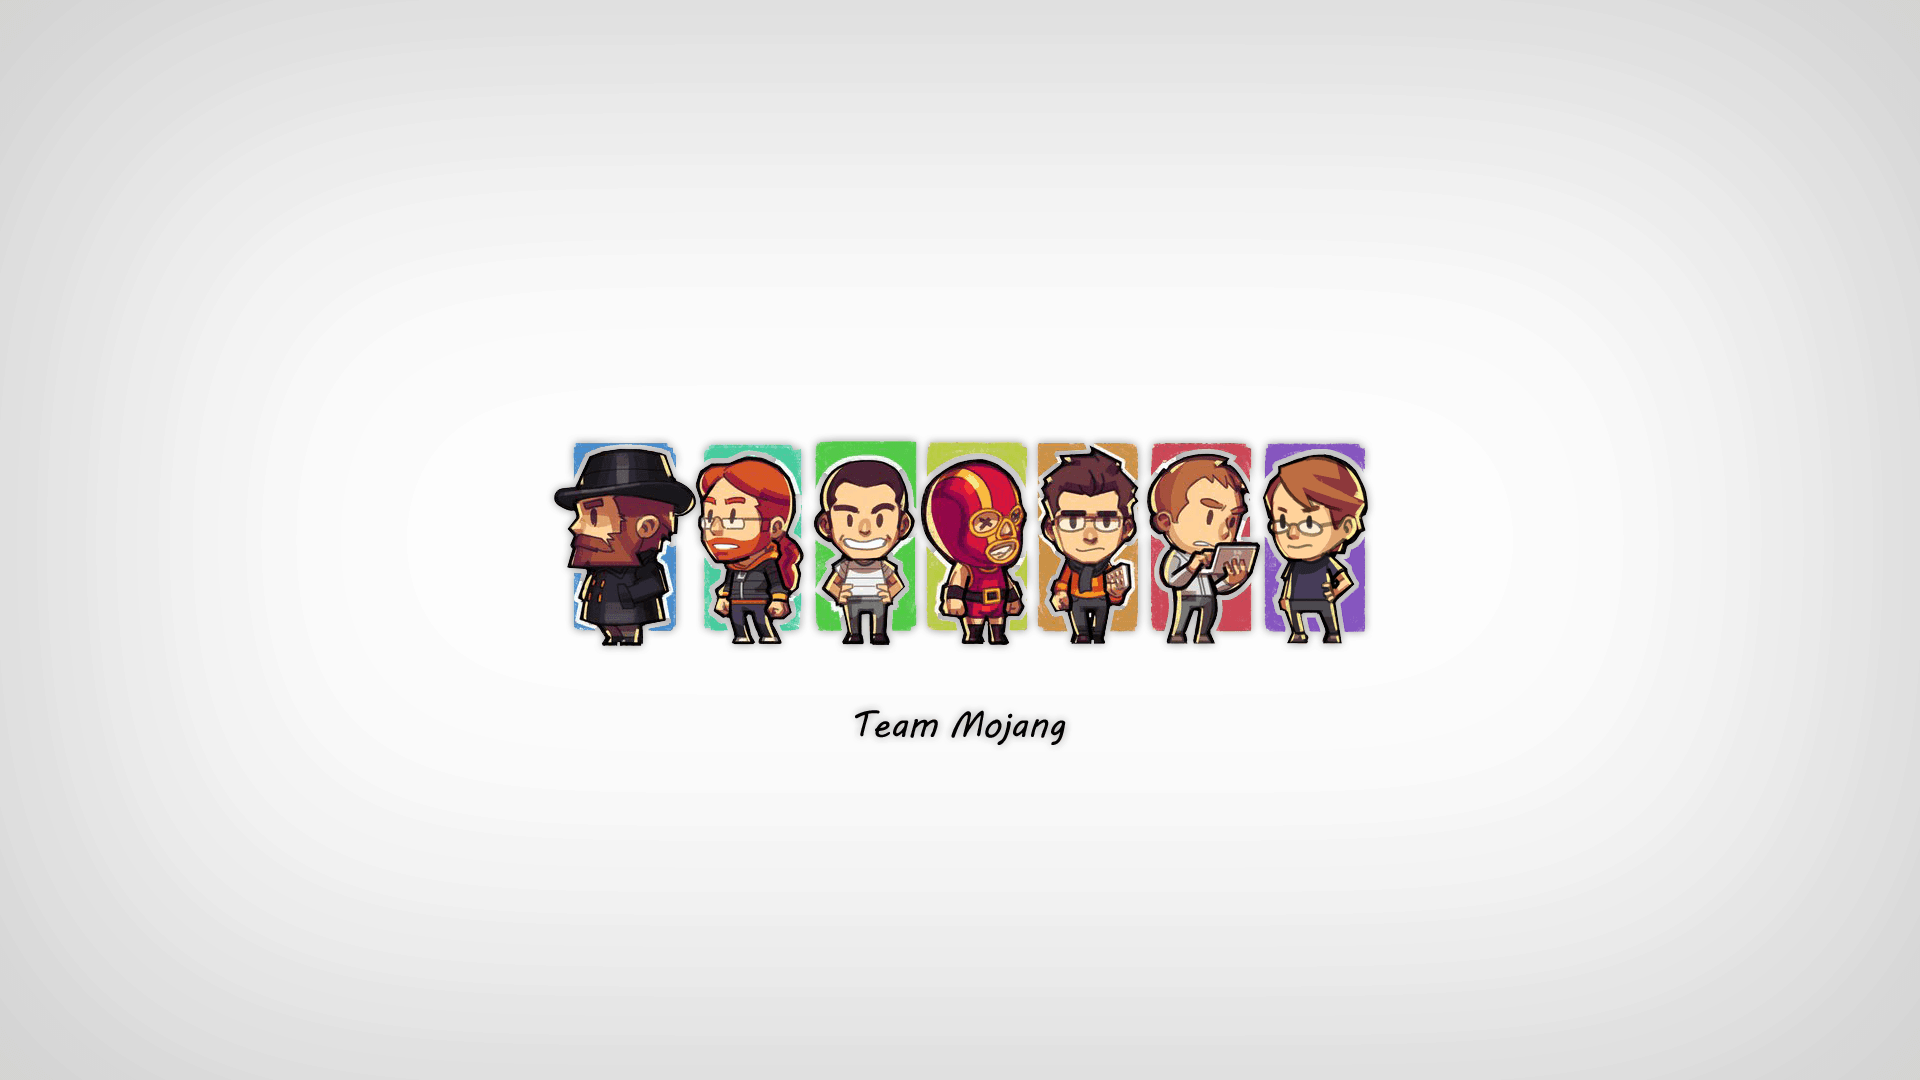 team_mojang_wallpaper_by_exmpletree-d3admkd